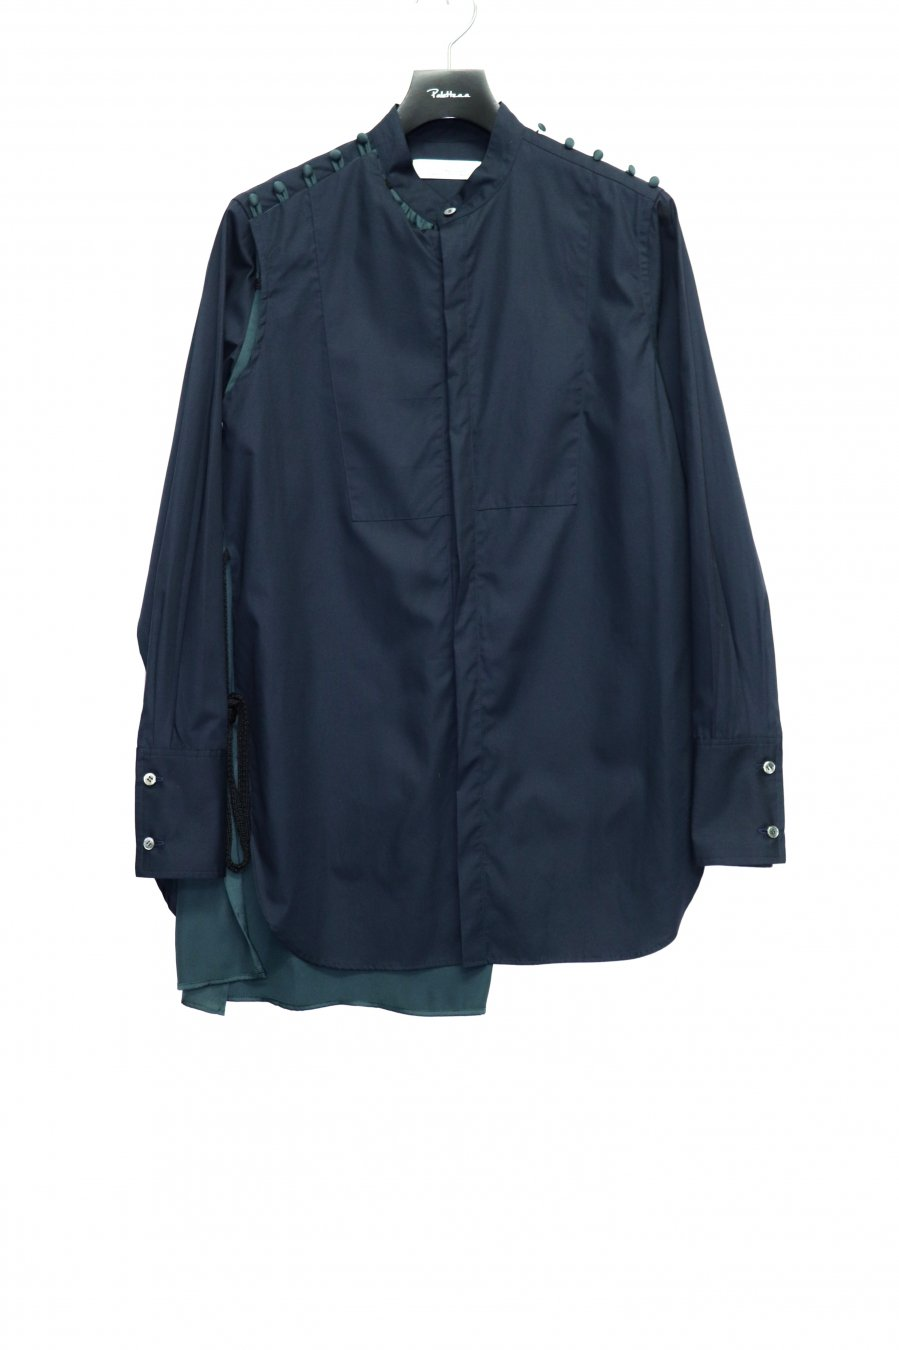 LENZ   2WAY SHIRT(NAVY)<img class='new_mark_img2' src='https://img.shop-pro.jp/img/new/icons15.gif' style='border:none;display:inline;margin:0px;padding:0px;width:auto;' />